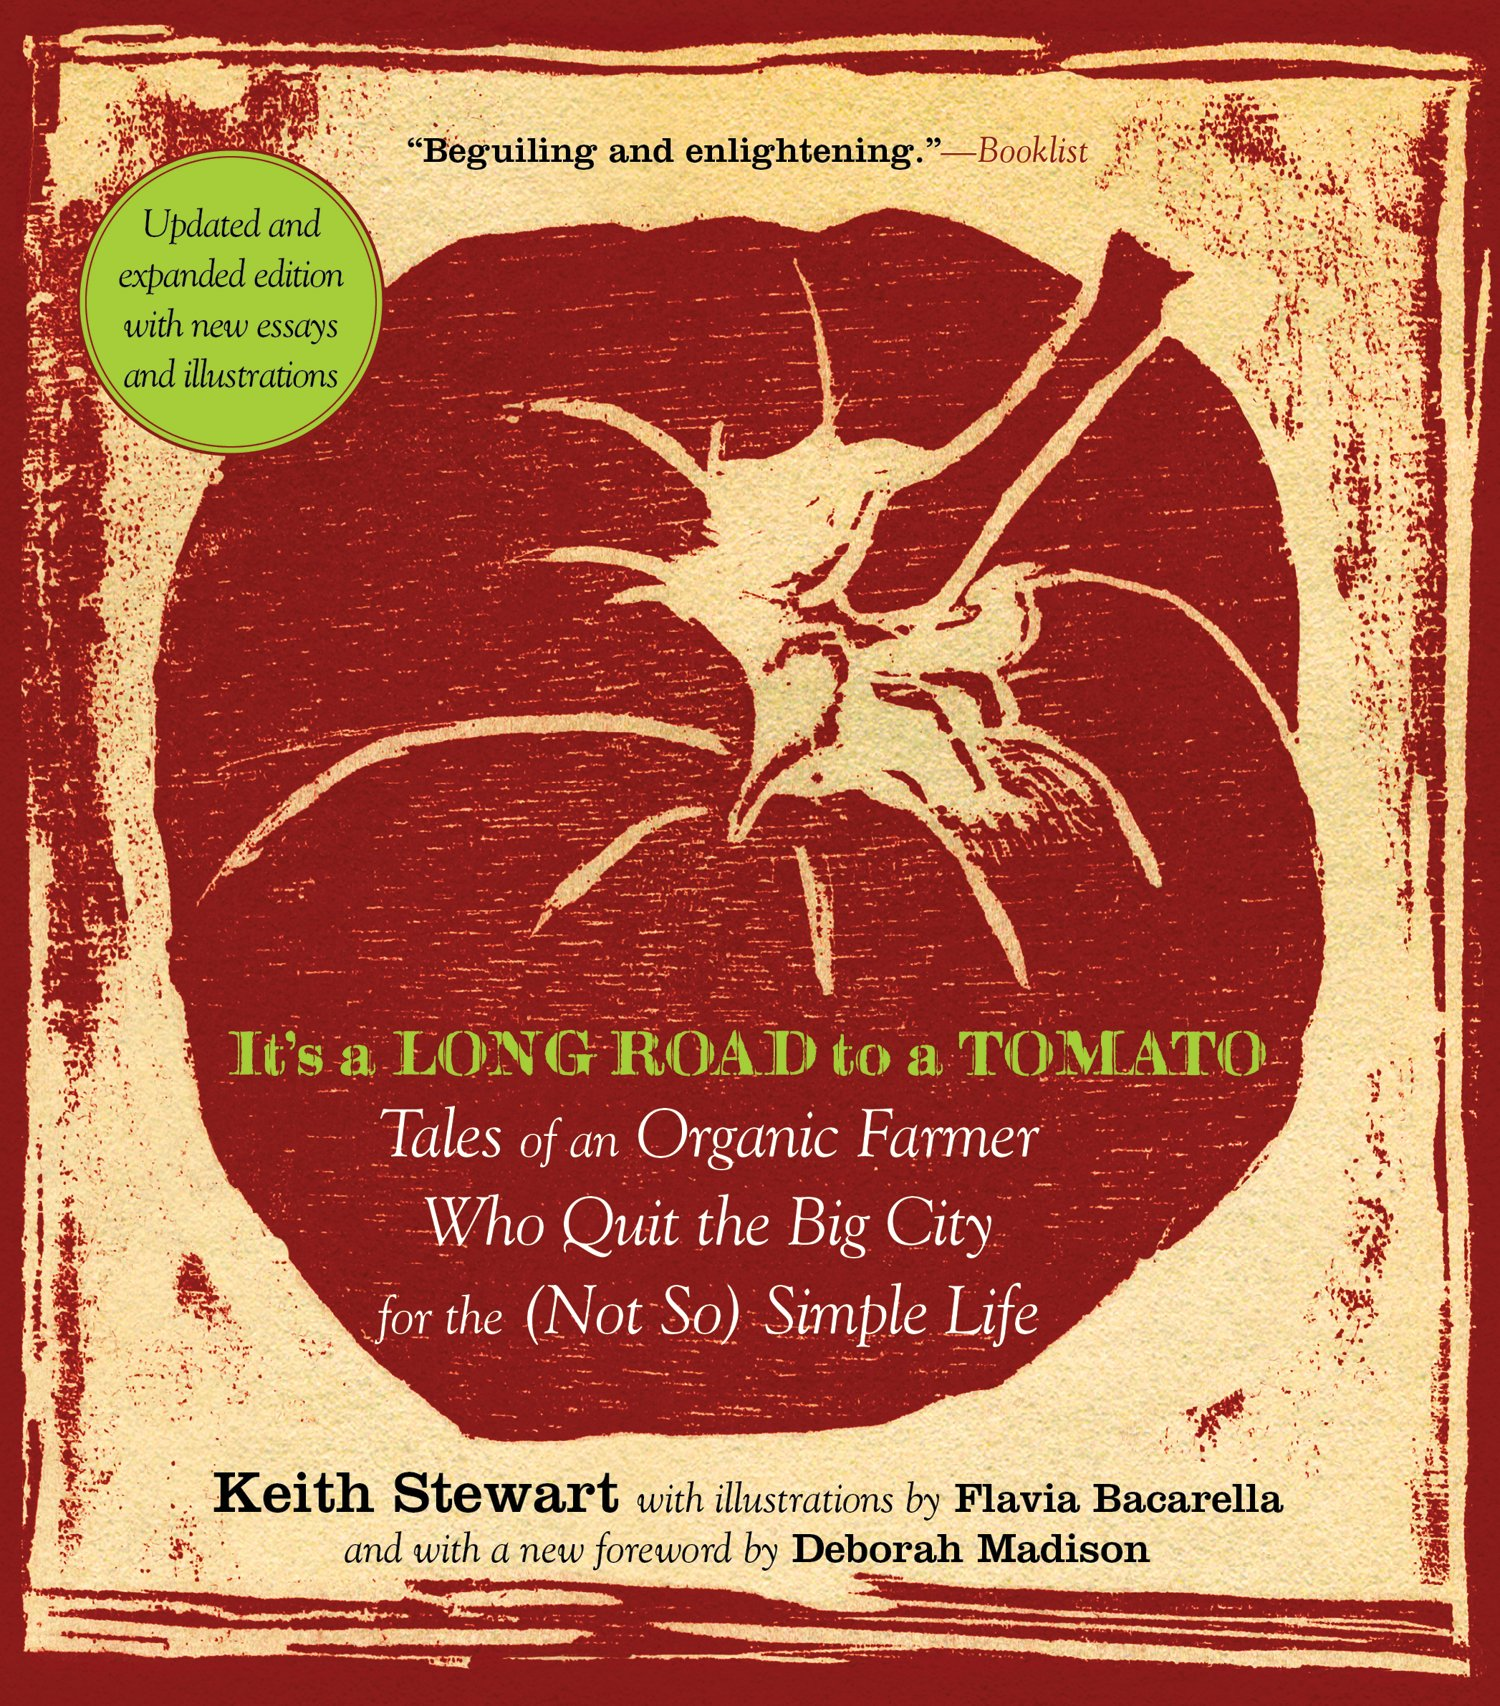 it s a long road to a tomato tales of an organic farmer who quit it s a long road to a tomato tales of an organic farmer who quit the big city for the not so simple life keith stewart flavia bacarella